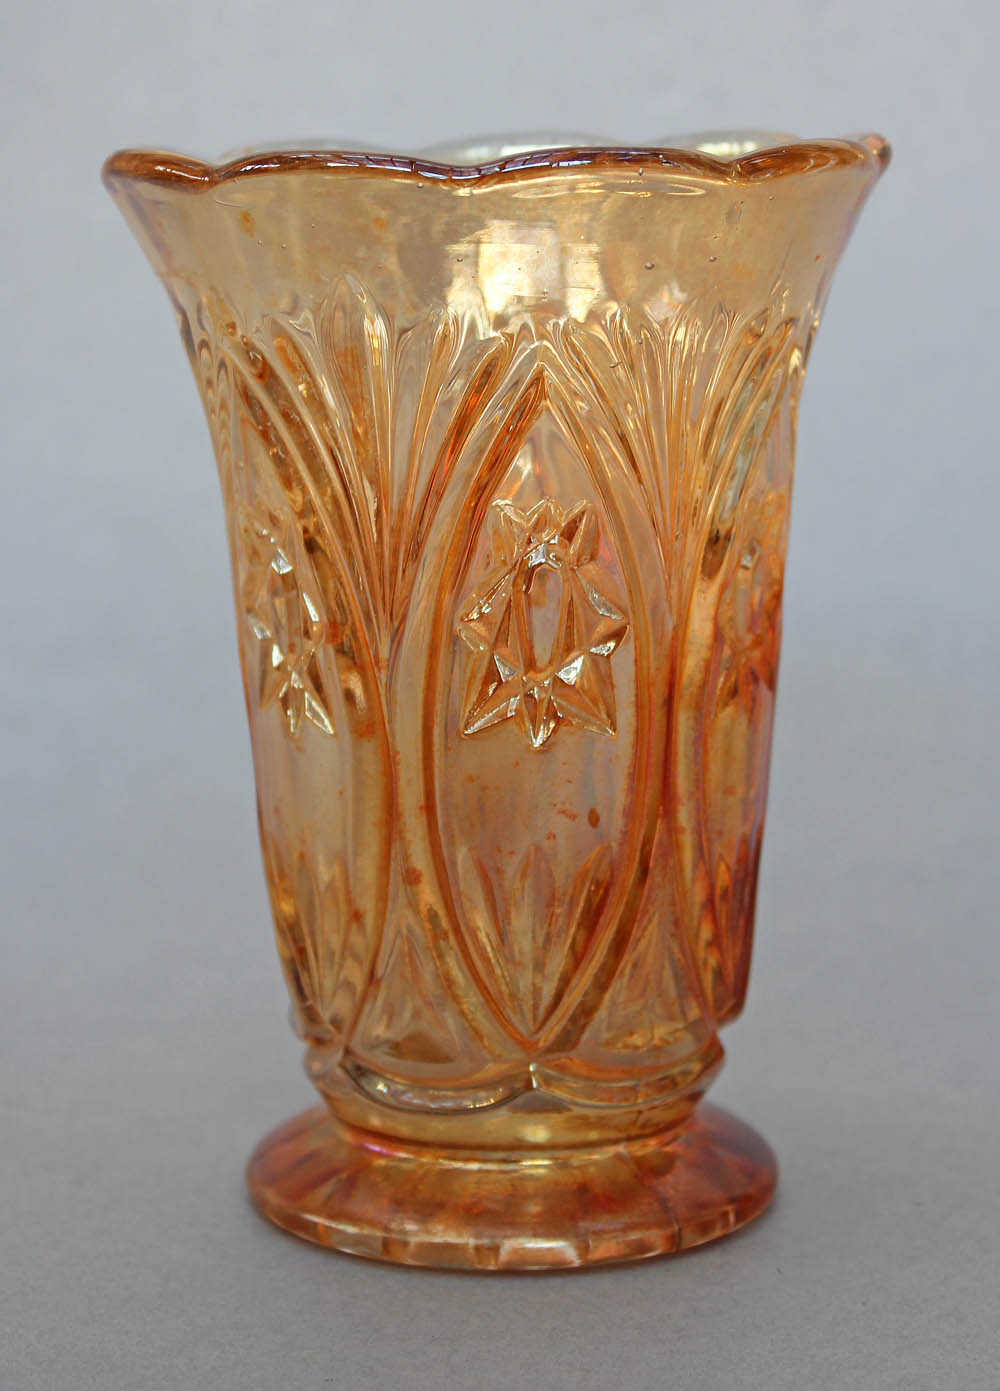 Hobstar Reversed celery vase, by Matthew Turnbull